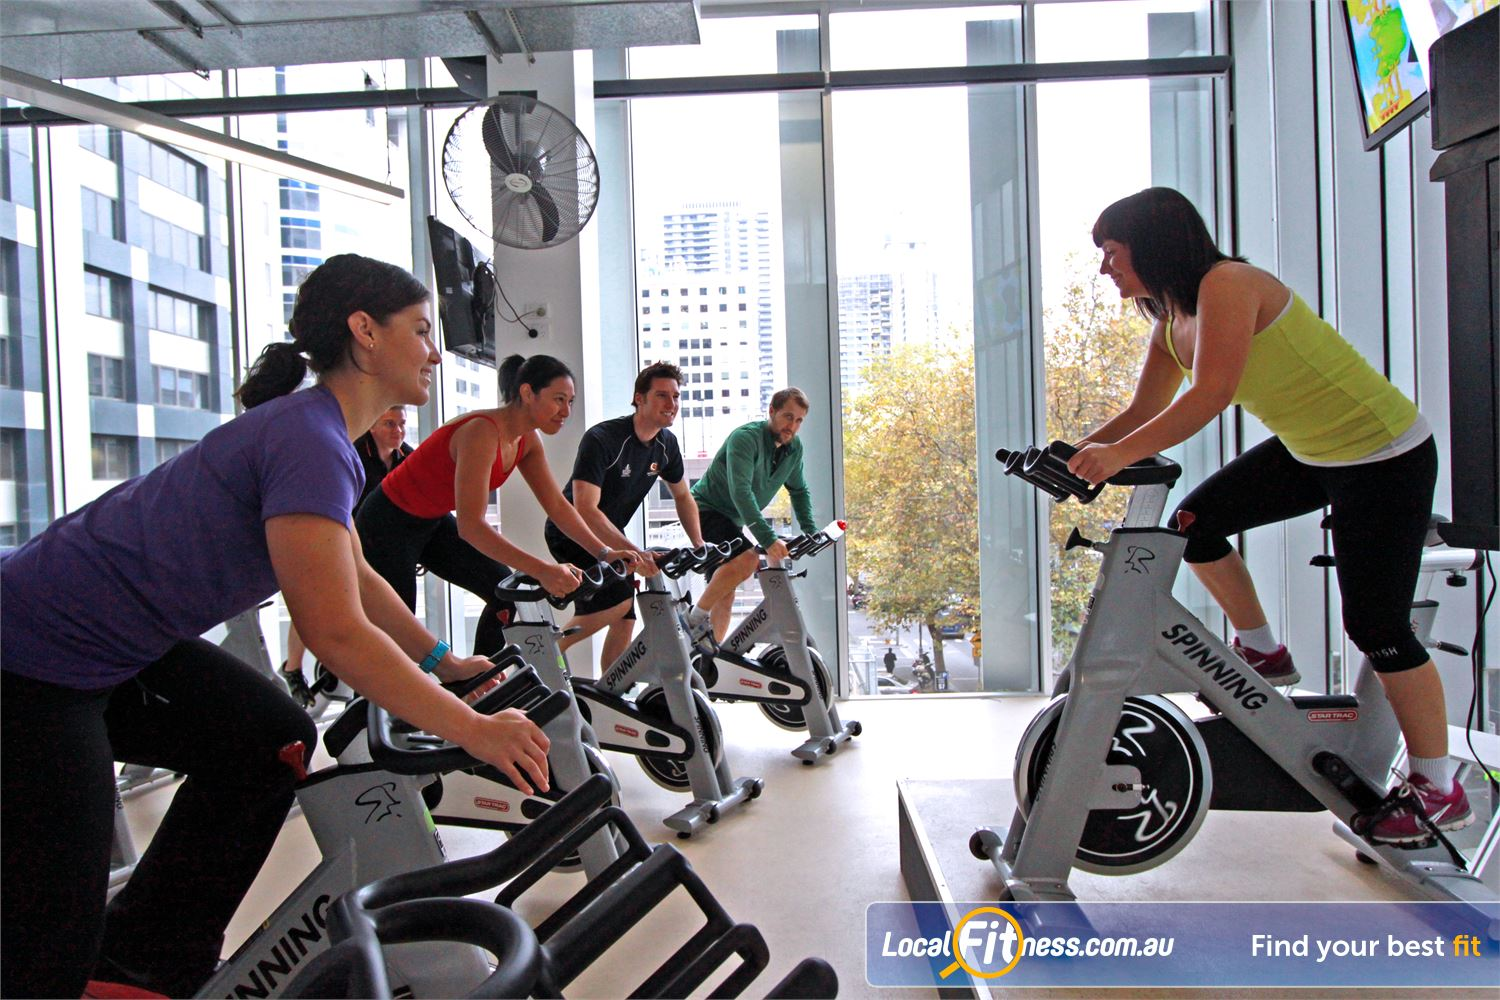 South Pacific Health Clubs Near Southbank Express cycle classes cater for busy city professionals.